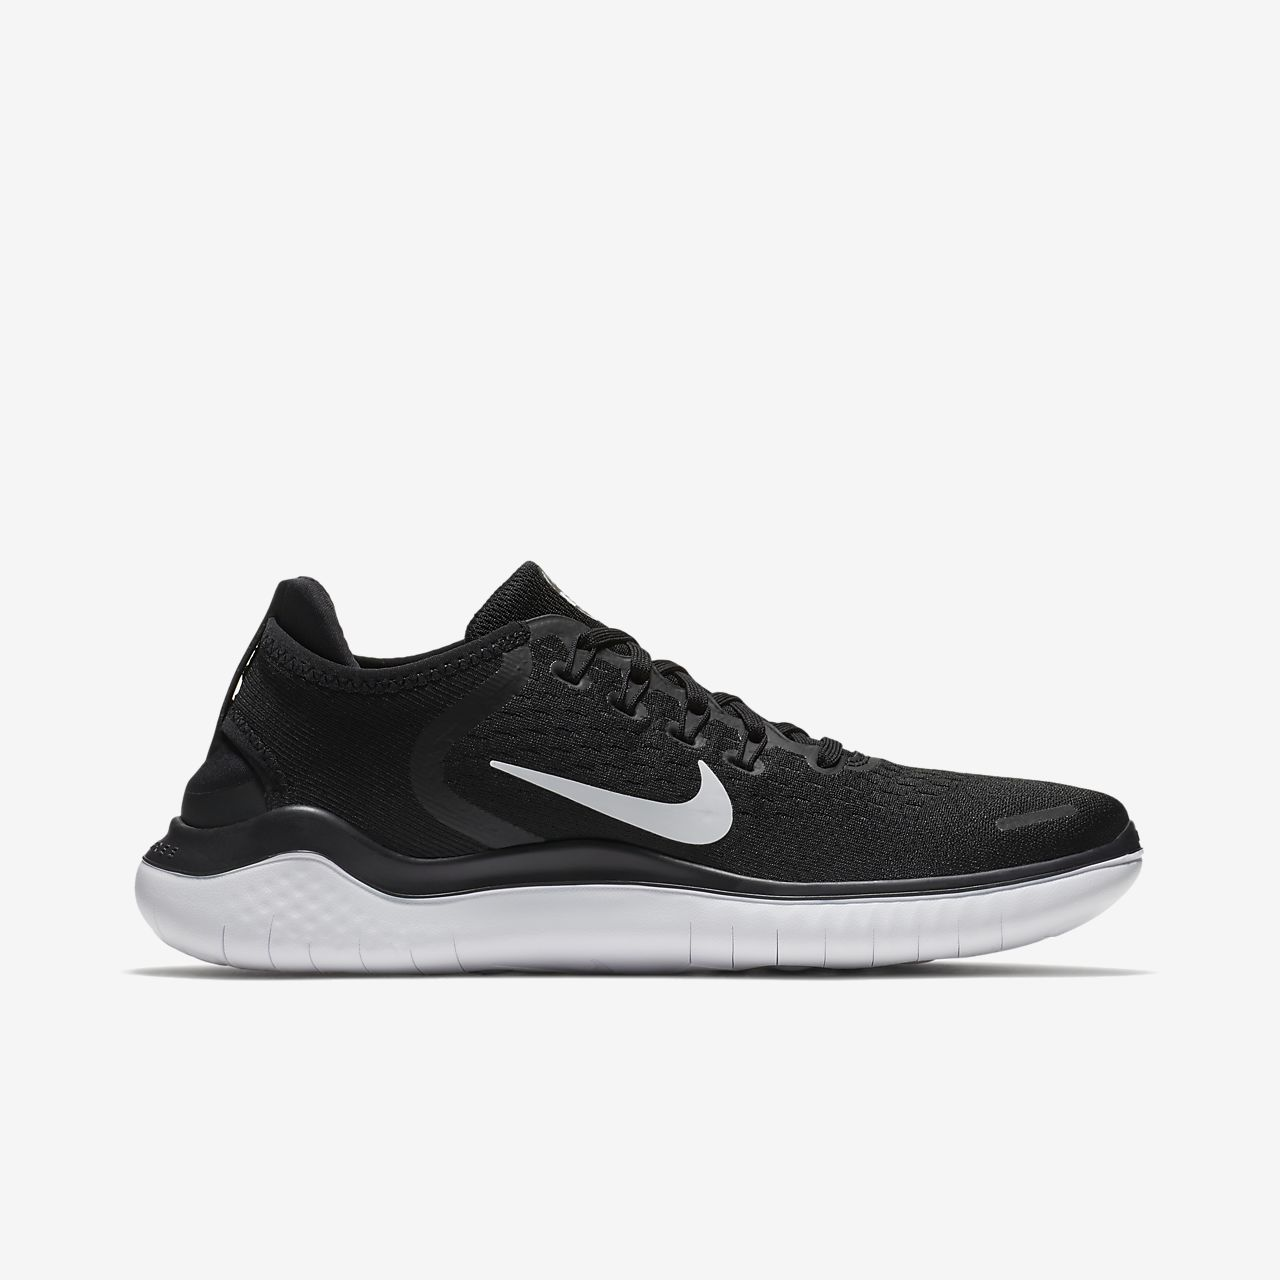 big sale 438be 1d6a1 ... Nike Free RN 2018 Men s Running Shoe